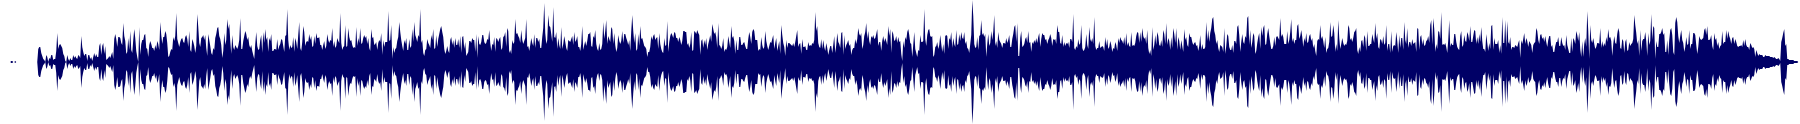 waveform of track #80137